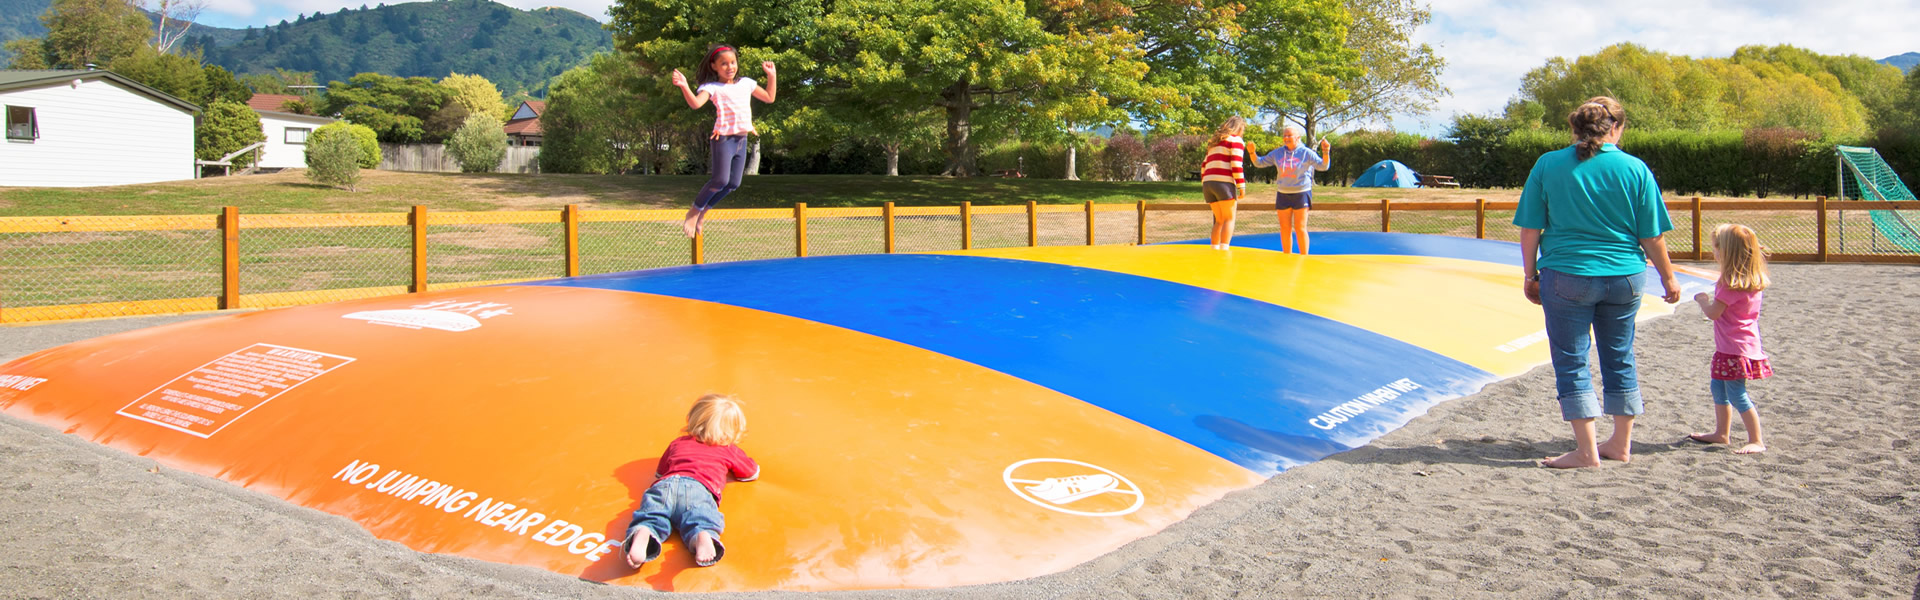 Kids Play Area At Parklands Marina Holiday Park In Picton NZ